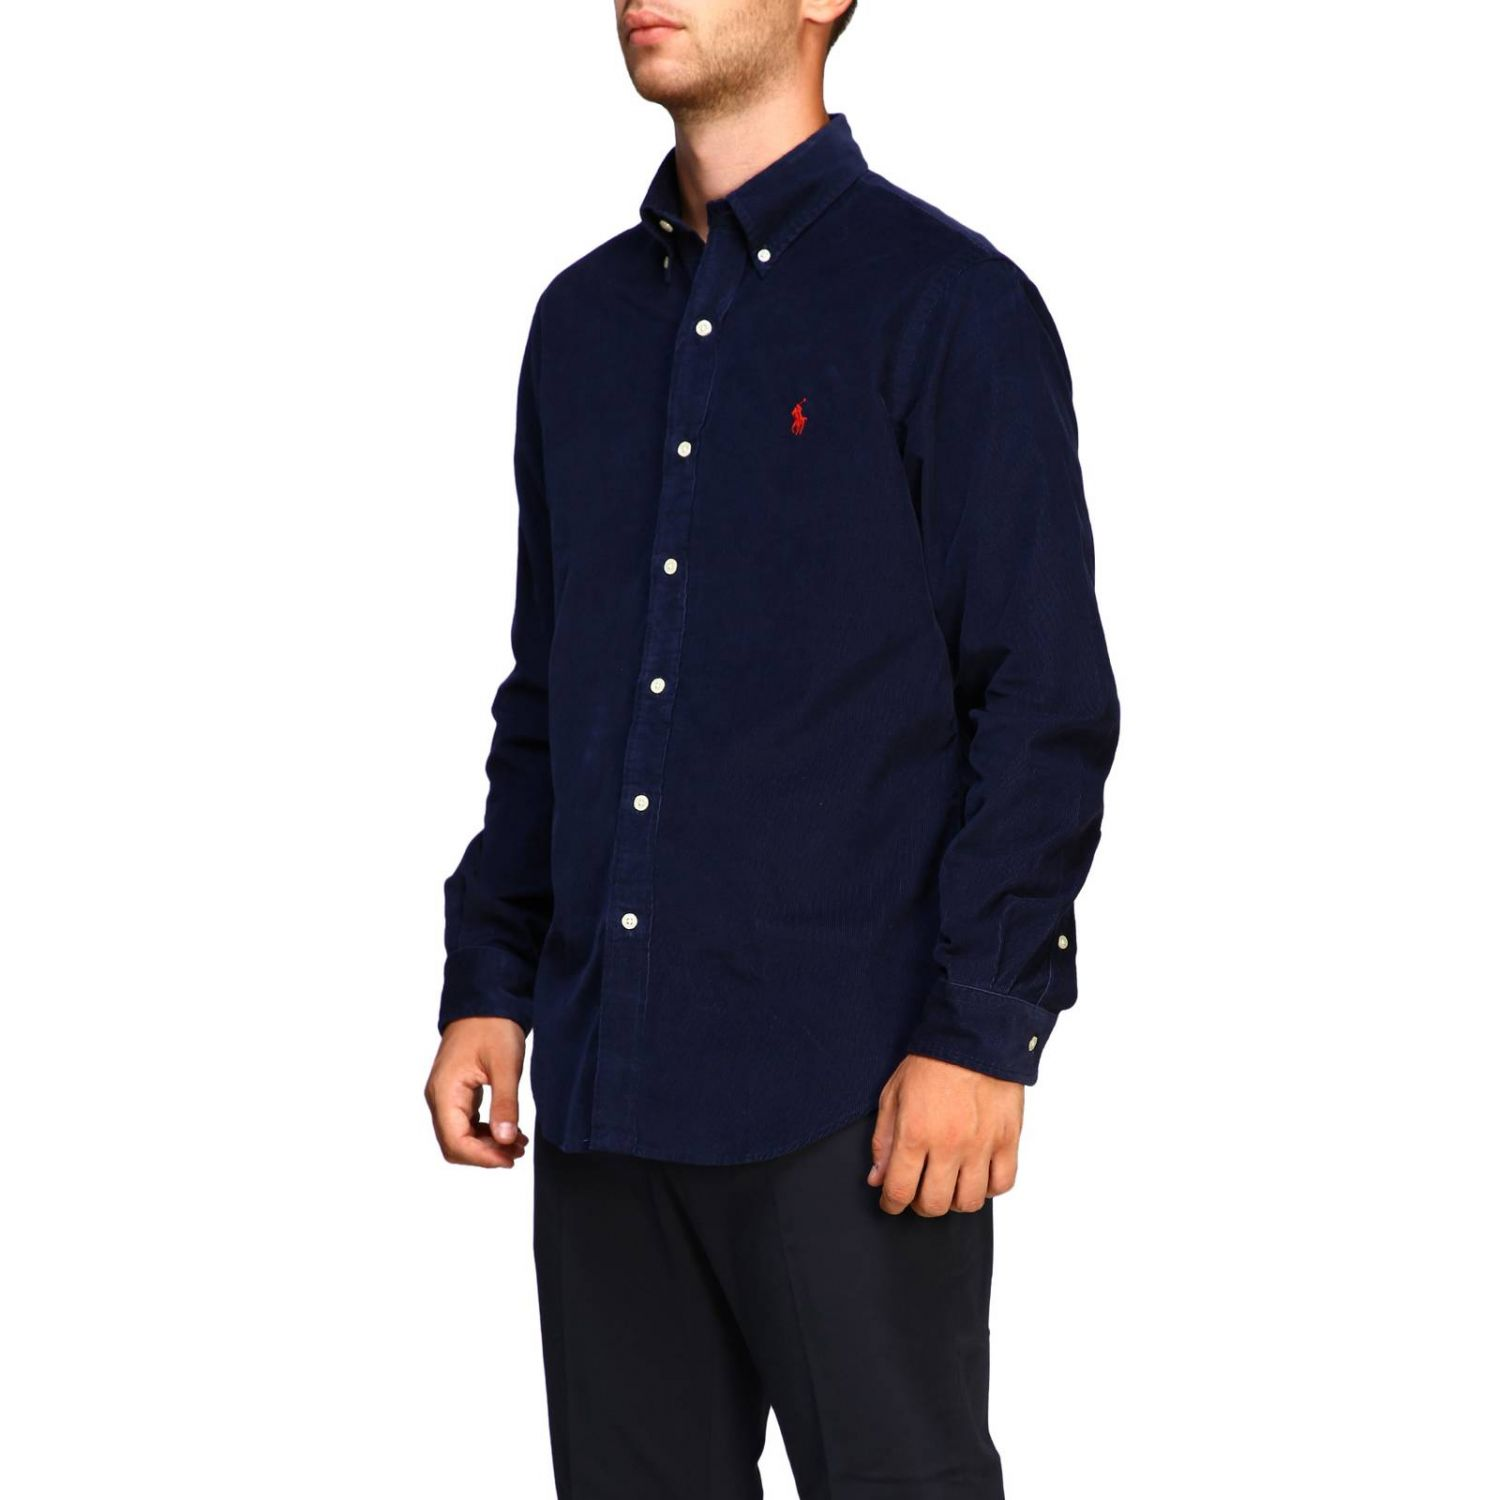 Custom-fit ribbed shirt with button-down collar and Polo Ralph Lauren logo blue 4